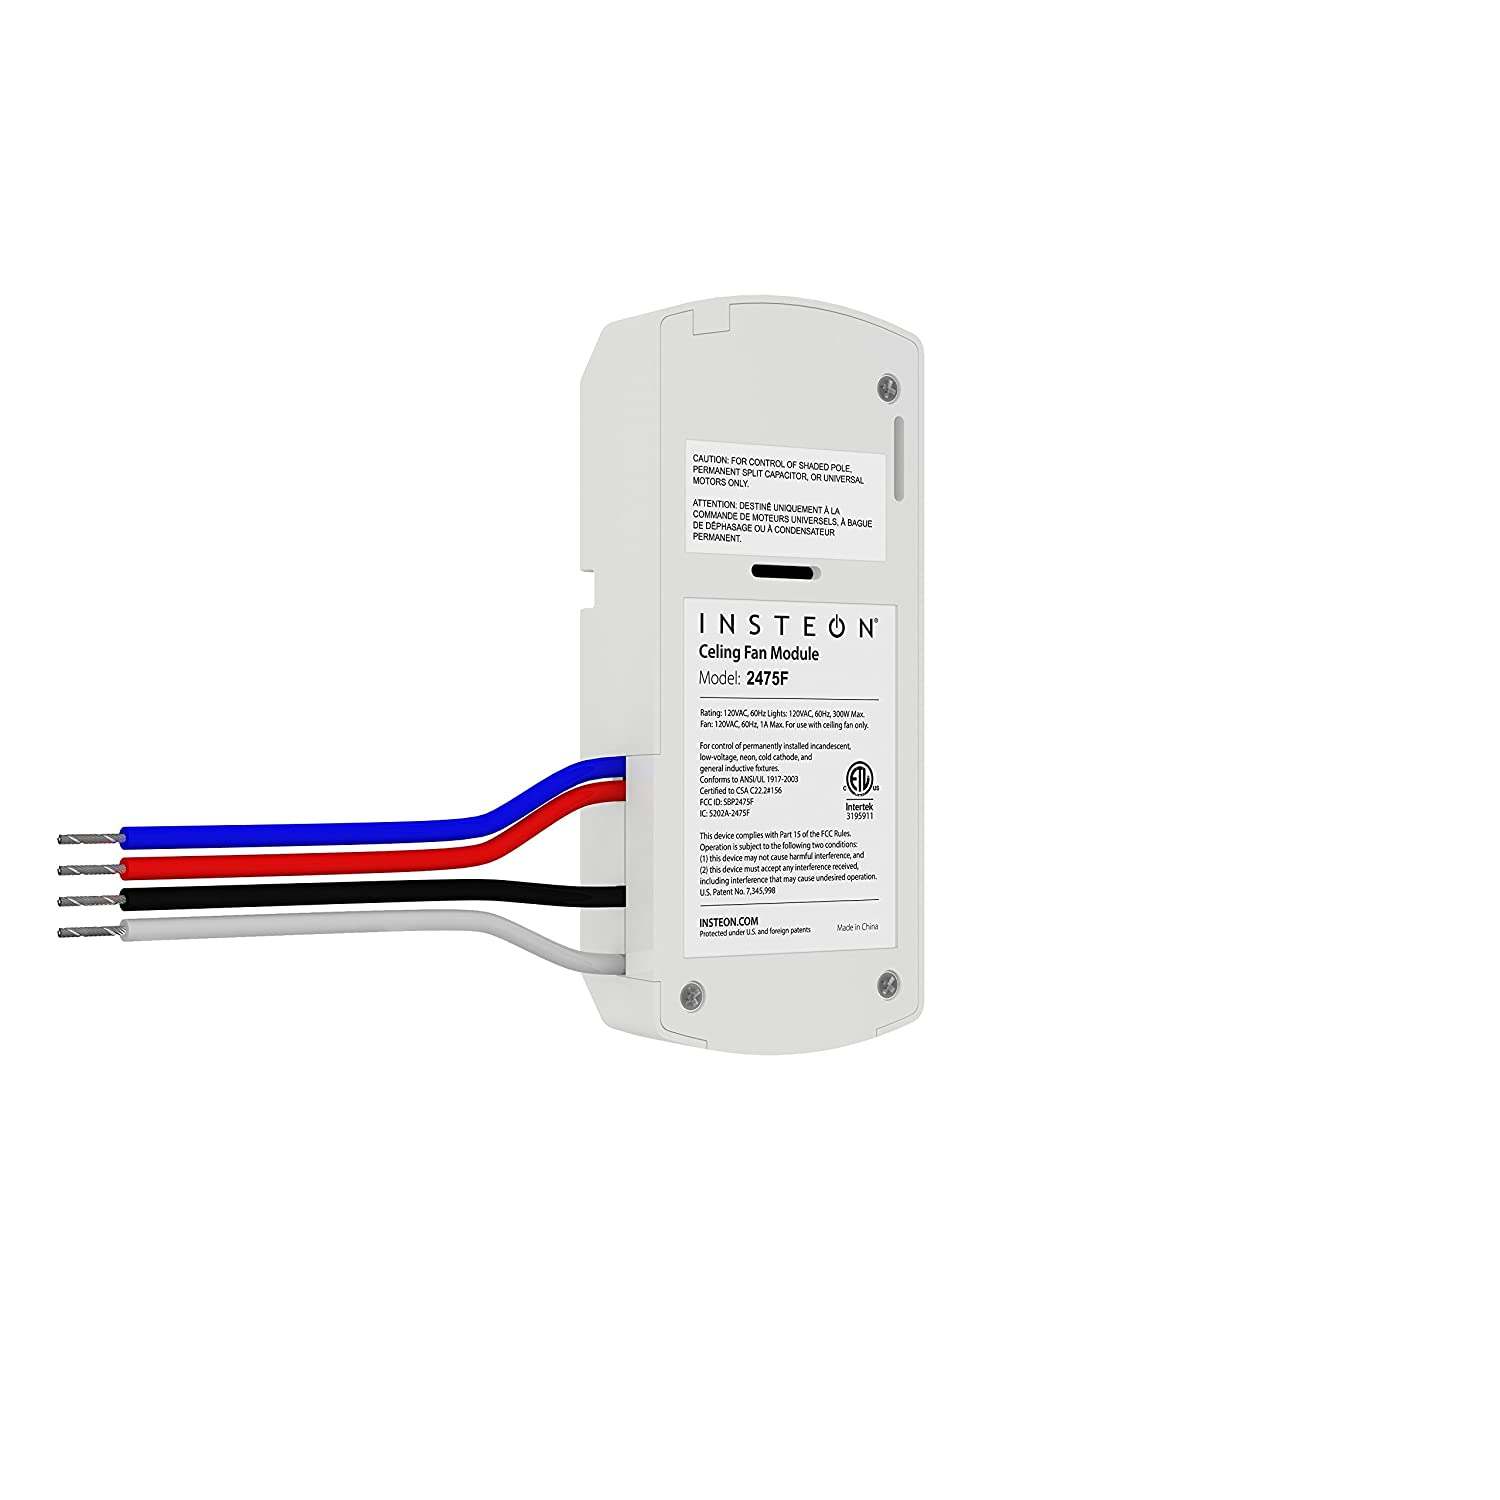 Dual Speed Fan Wiring Insteon 2475f Fanlinc Band Ceiling And Light Controller Connected Home Modules